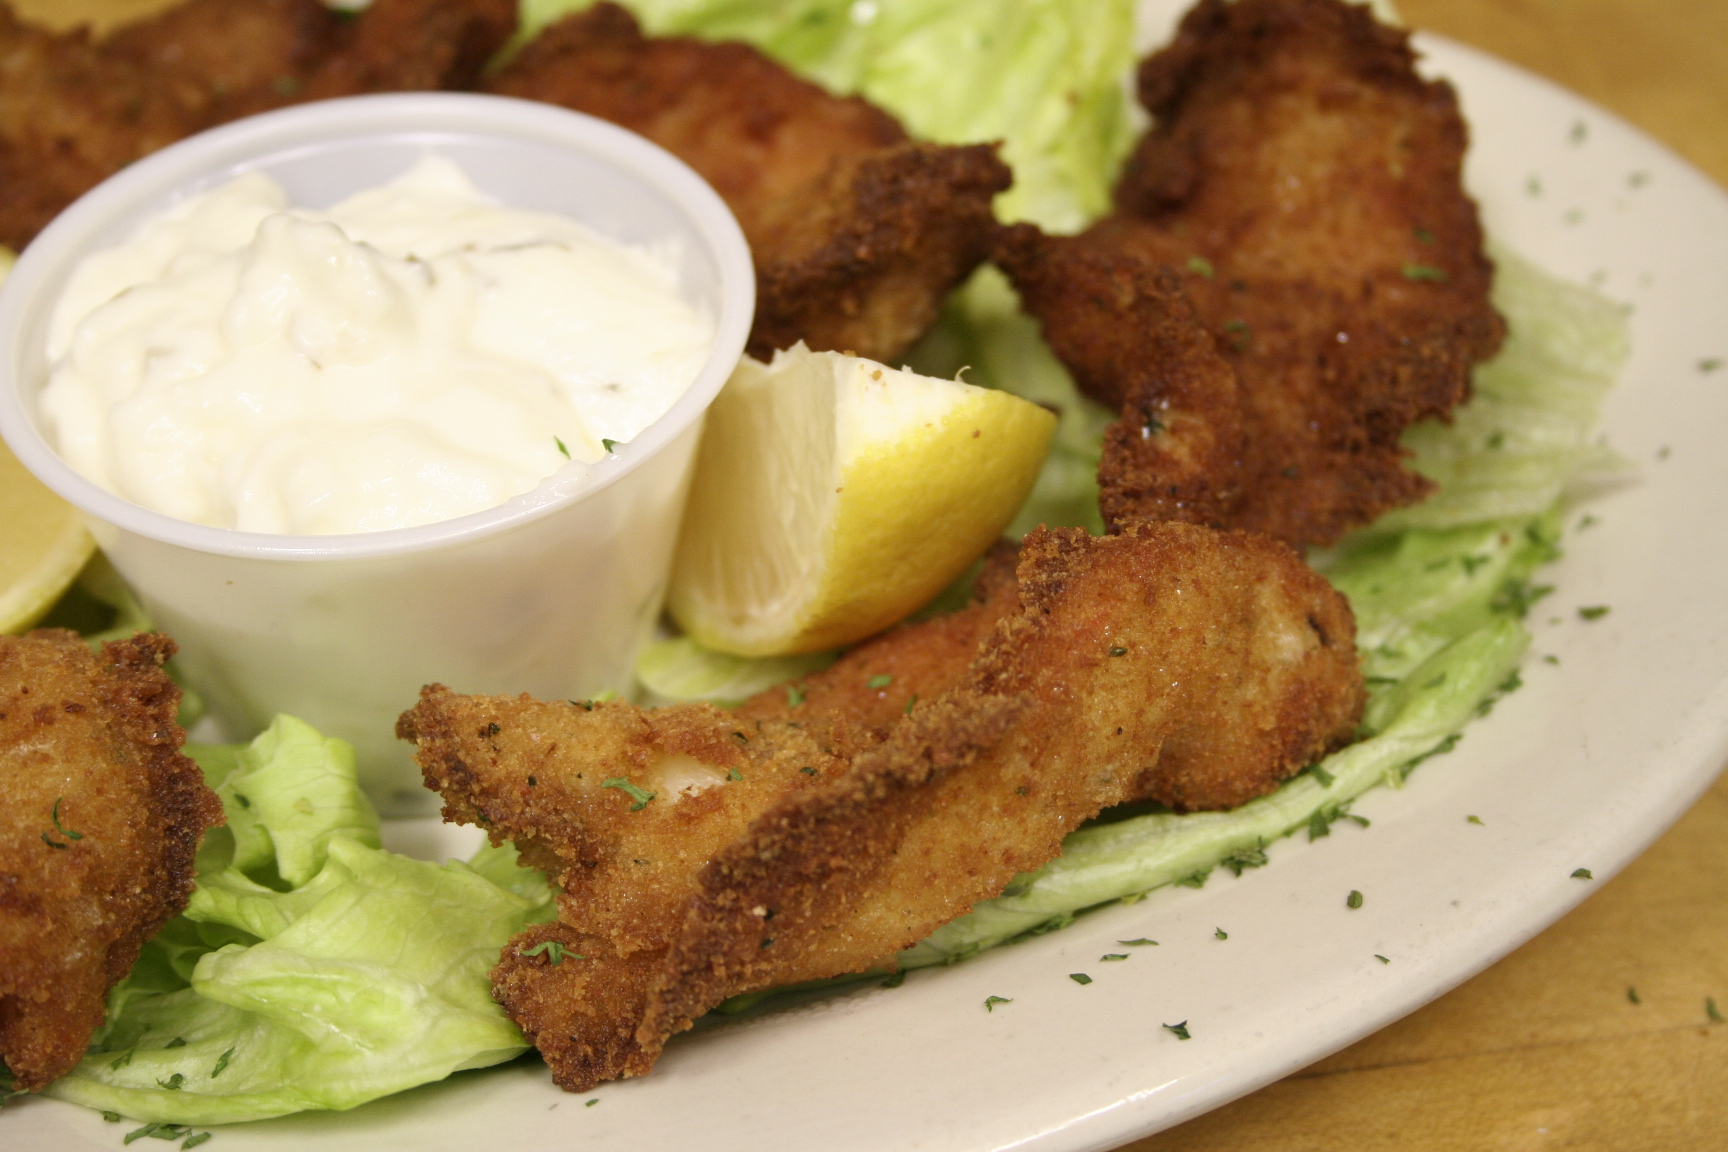 Fried appetizer on bed of lettuce with white dipping sauce